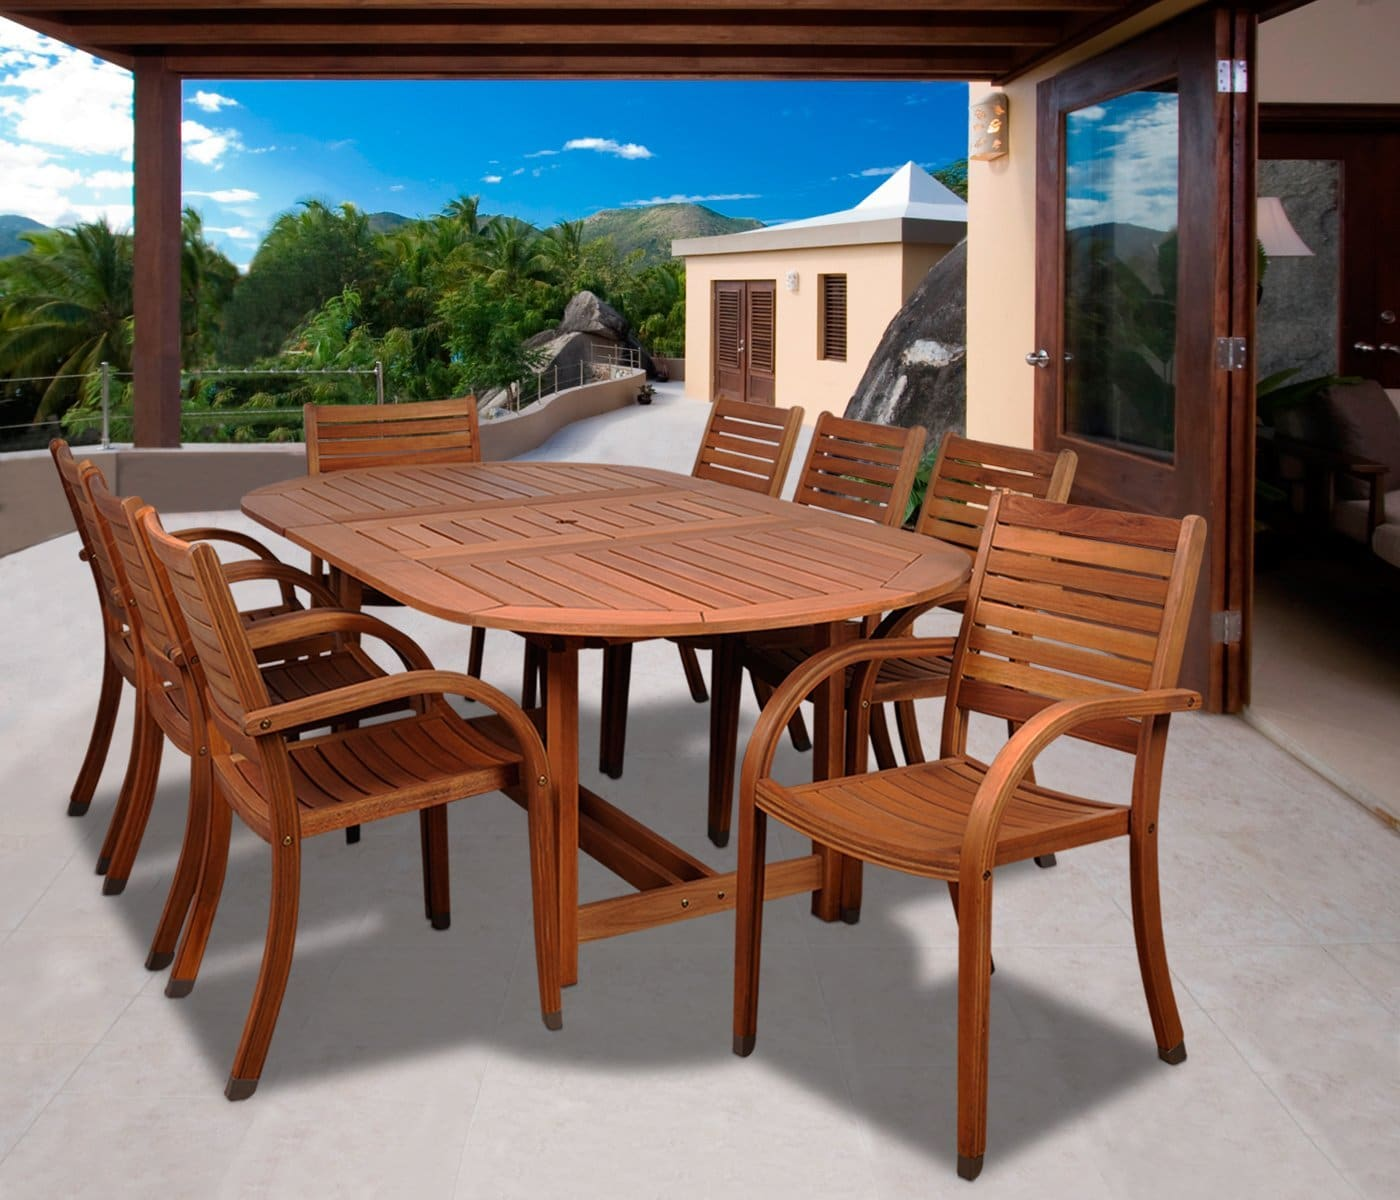 Round Table Patio Furniture Sets Best Eucalyptus Outdoor Furniture Patio Sets 2019 Buying Guide